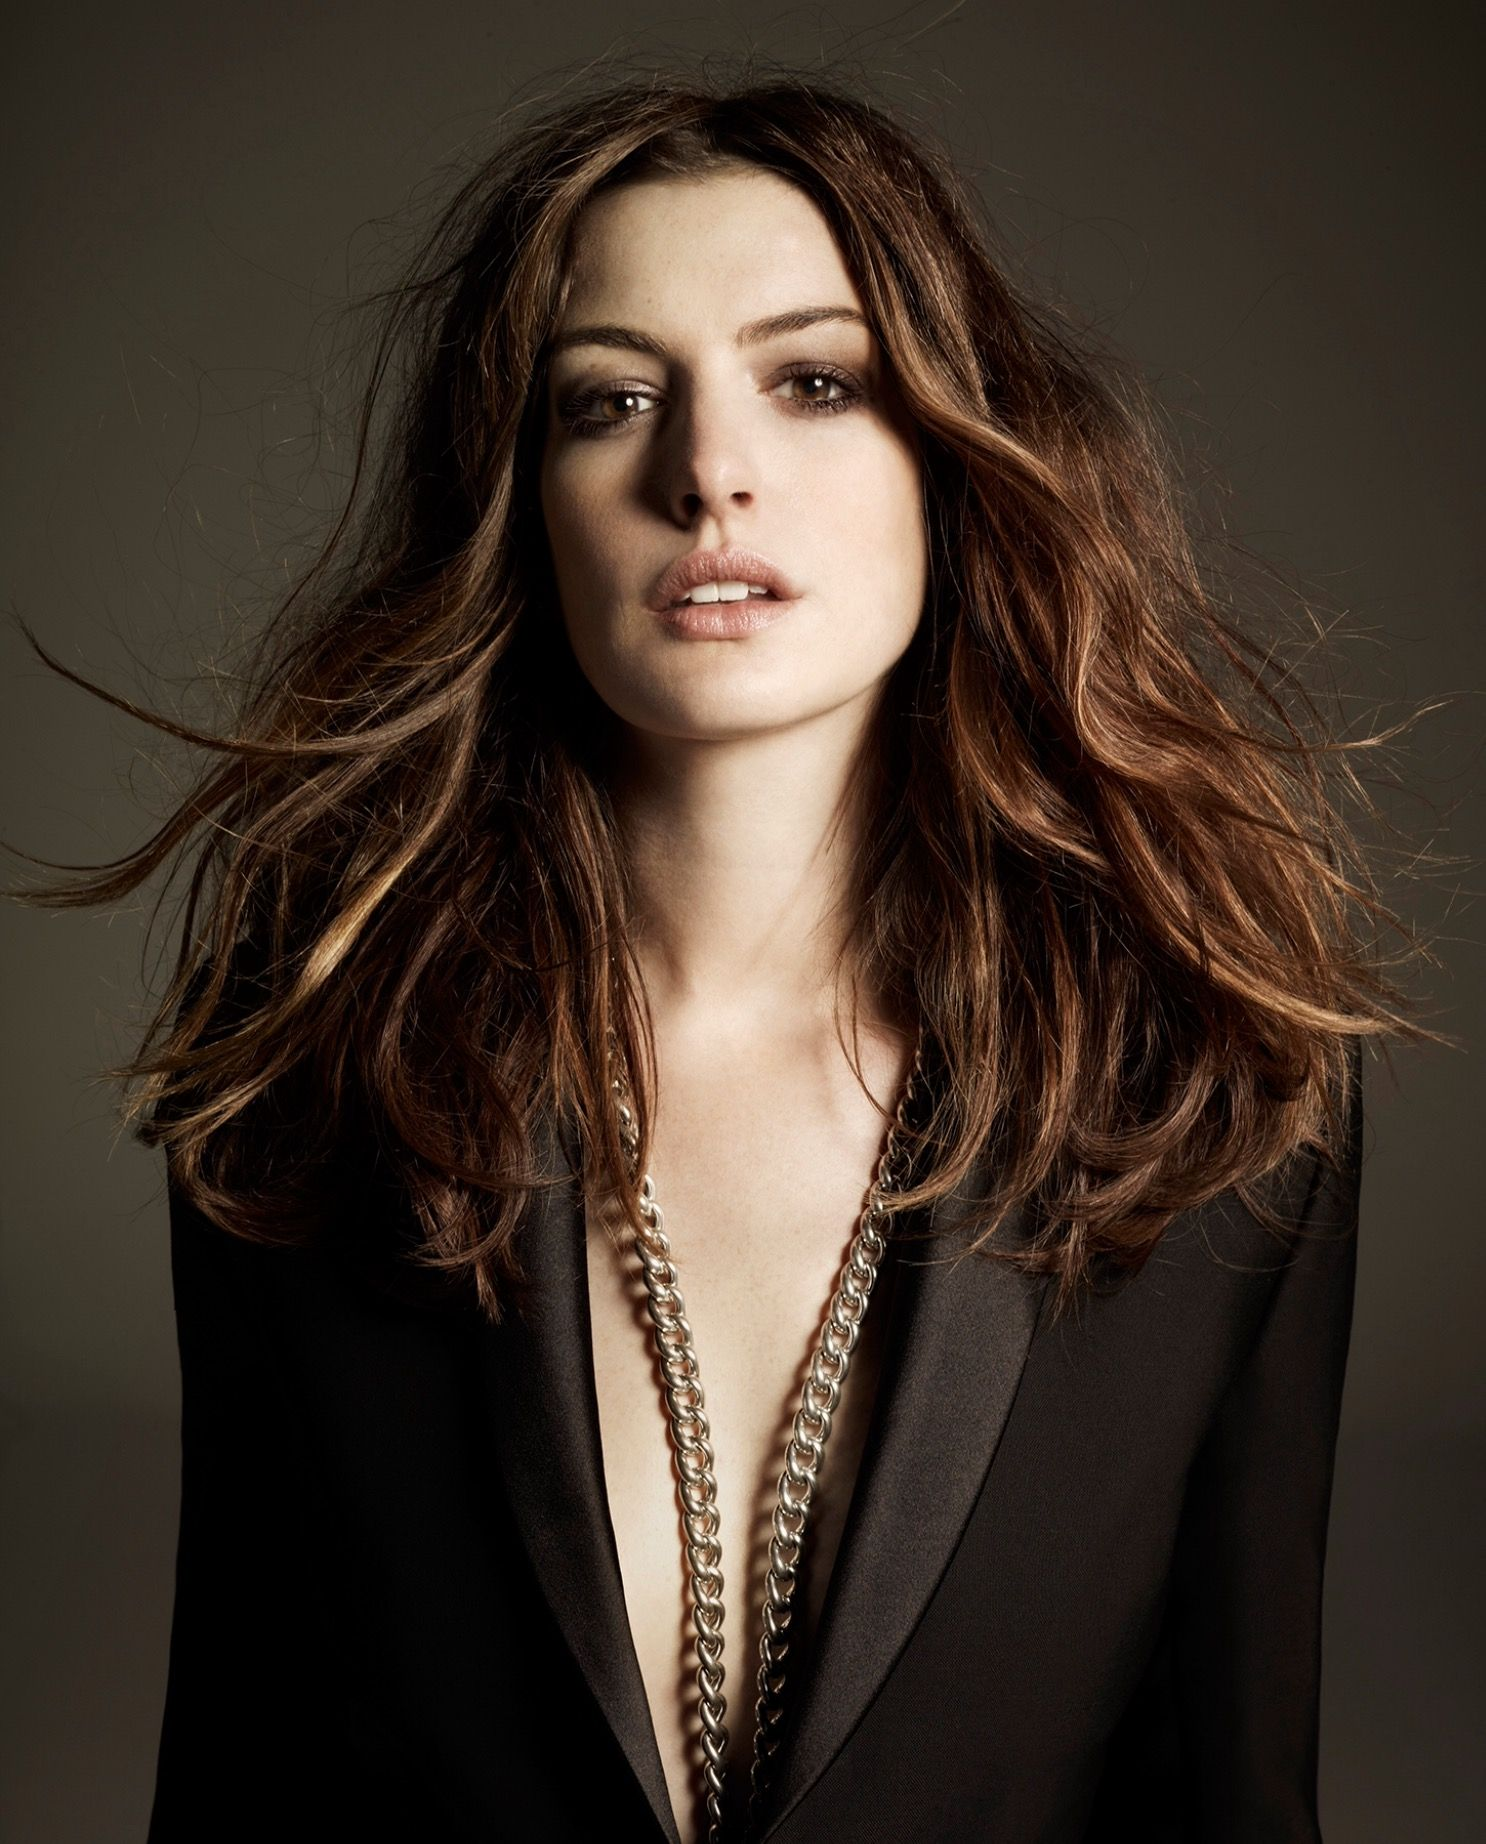 Anne Hathaway Movie 2019: Anne Hathaway Is A Great Actress, That Since I Was Little